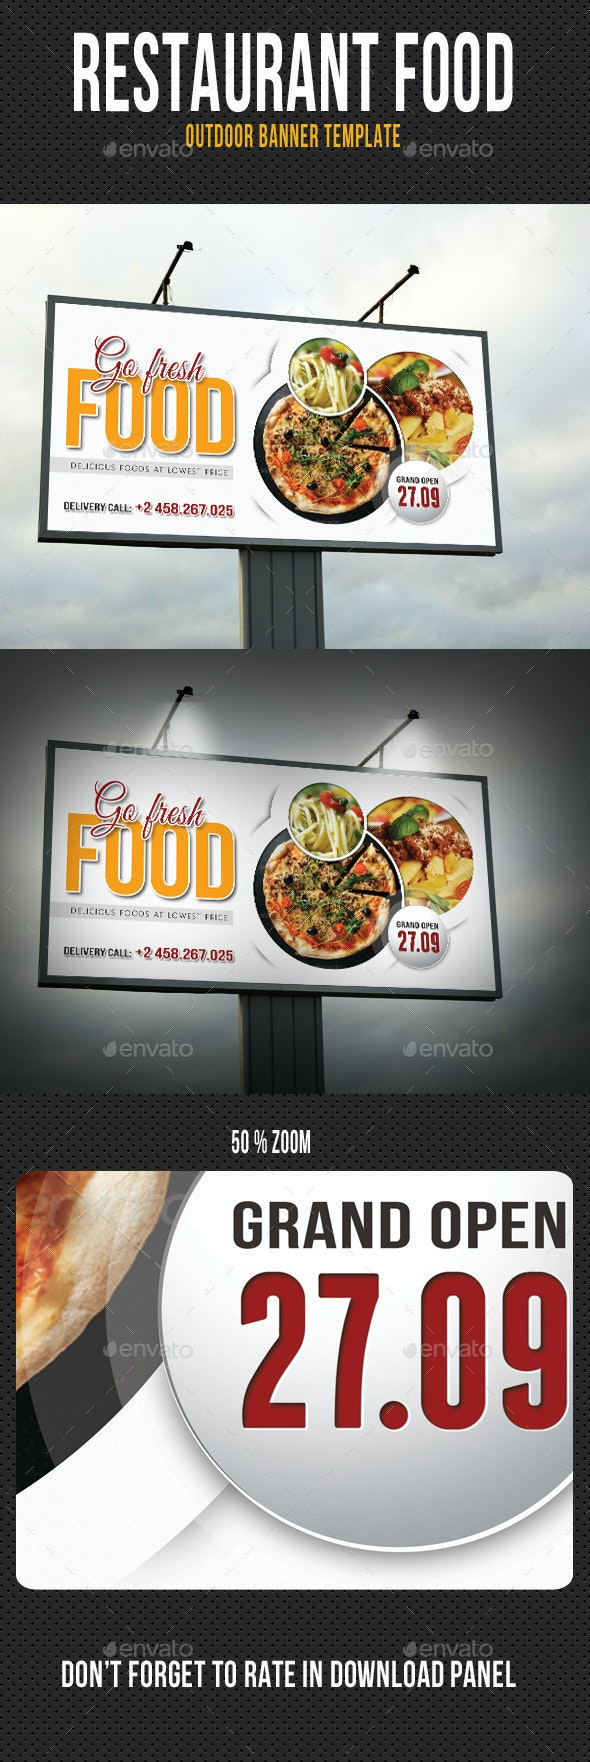 Restaurant Food Outdoor Banner Template - Signage Print Templates